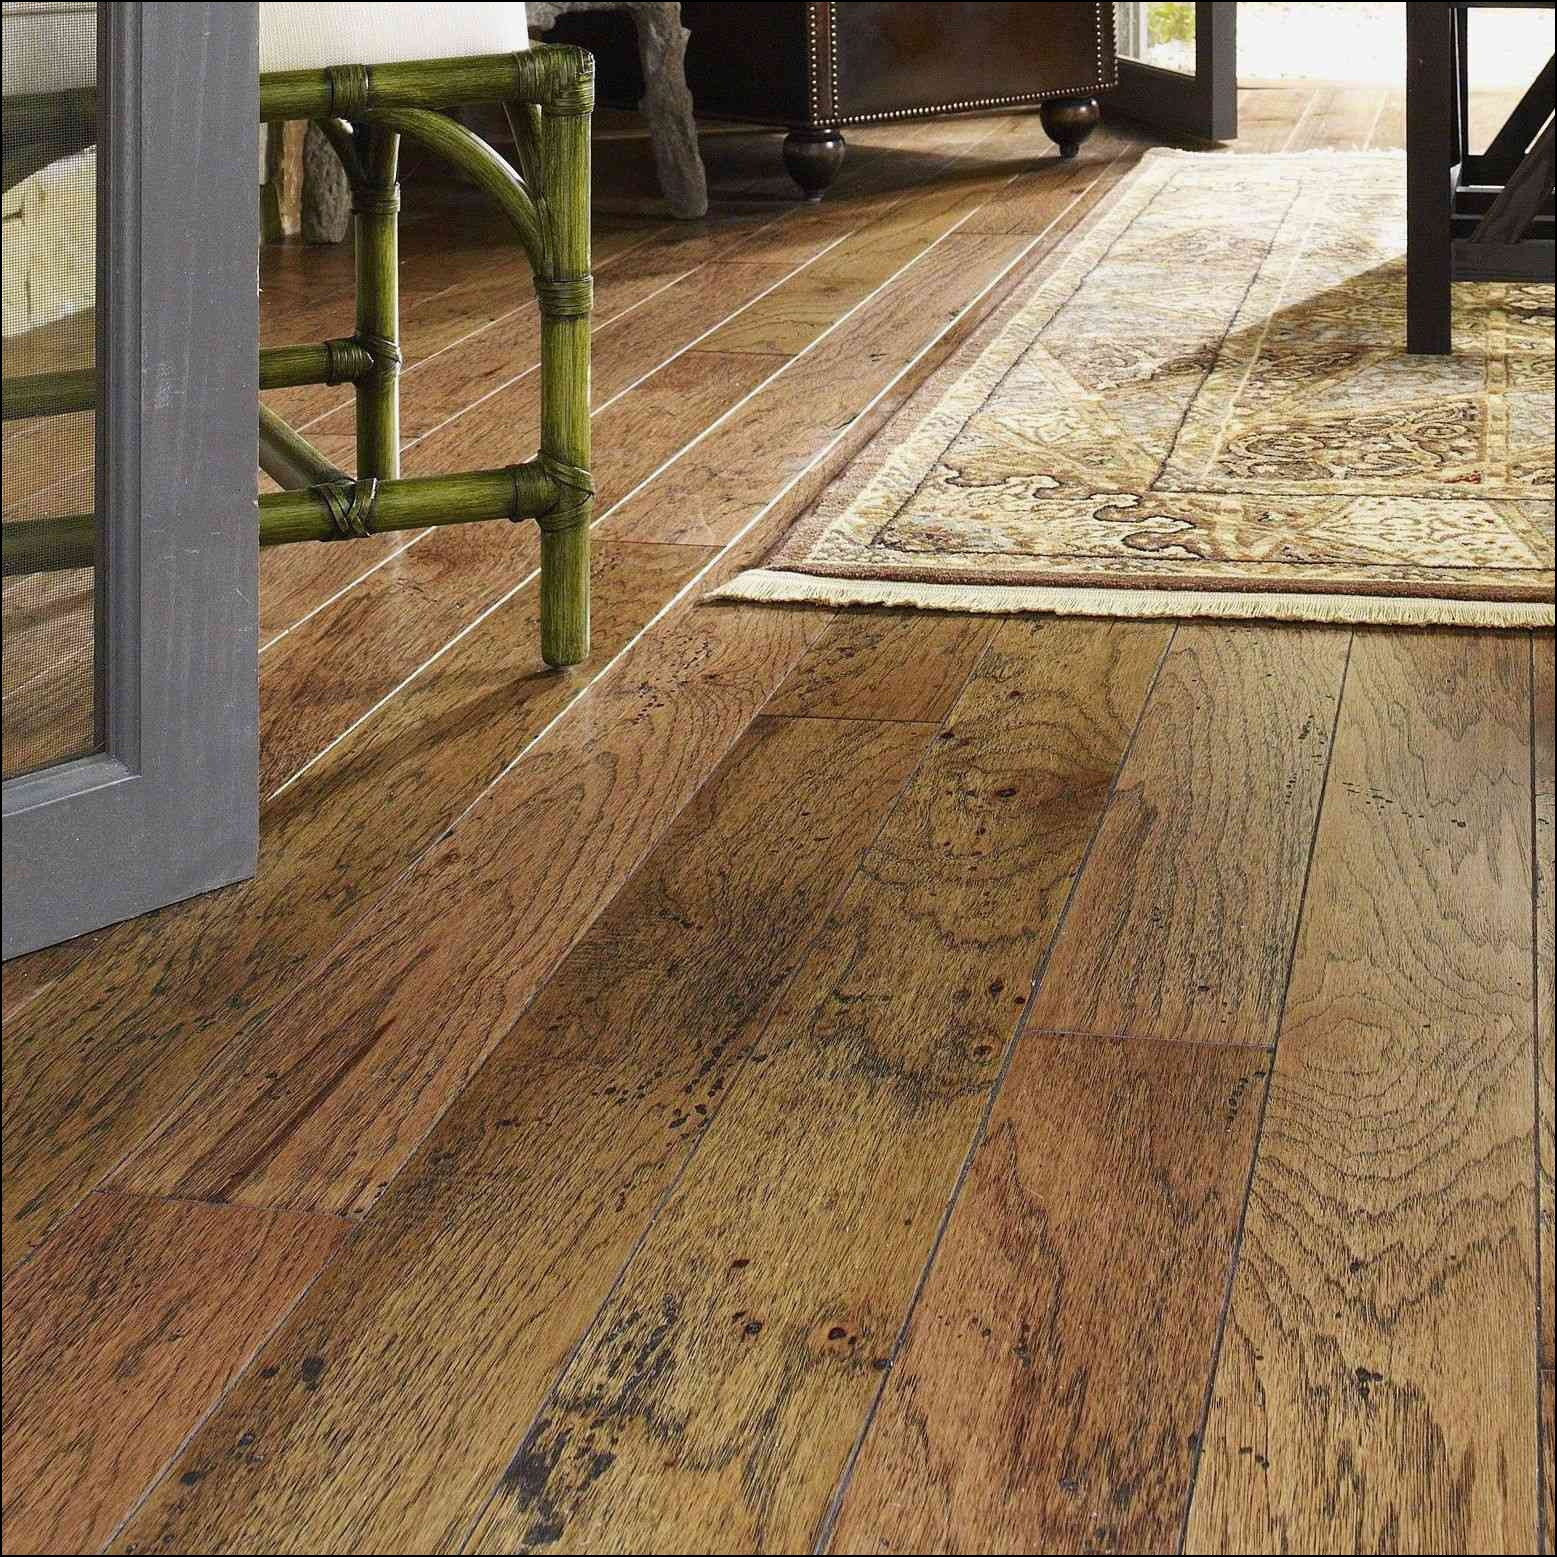 hardwood flooring types pros and cons of what is flooring ideas in what is the best gym flooring images best type wood flooring best floor floor wood floor